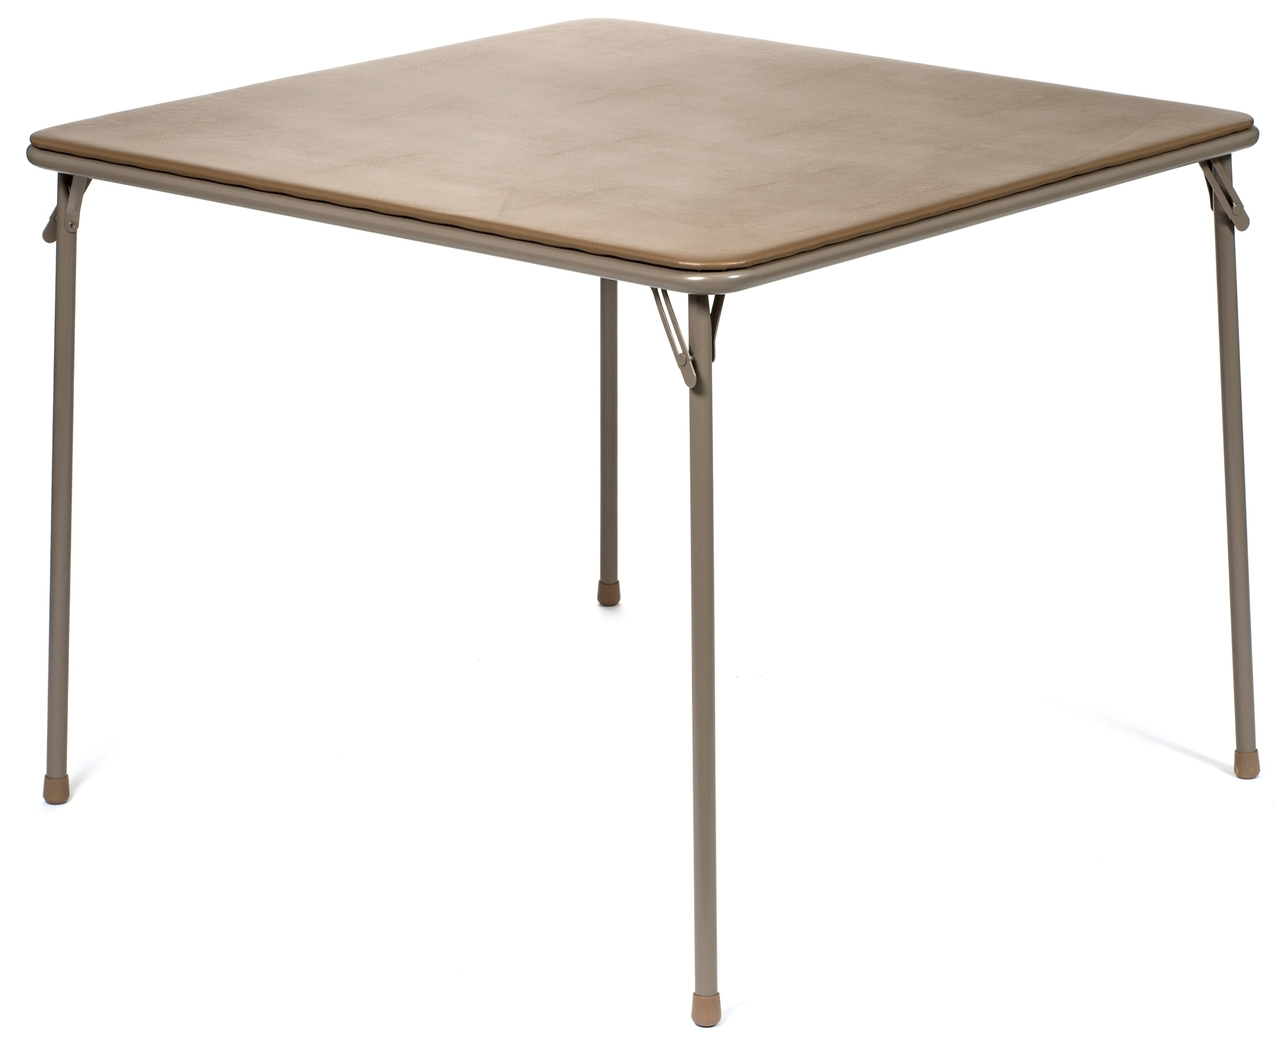 Square folding tables - Xl Series 38 Square Folding Card And Game Table Wheelchair Accessible